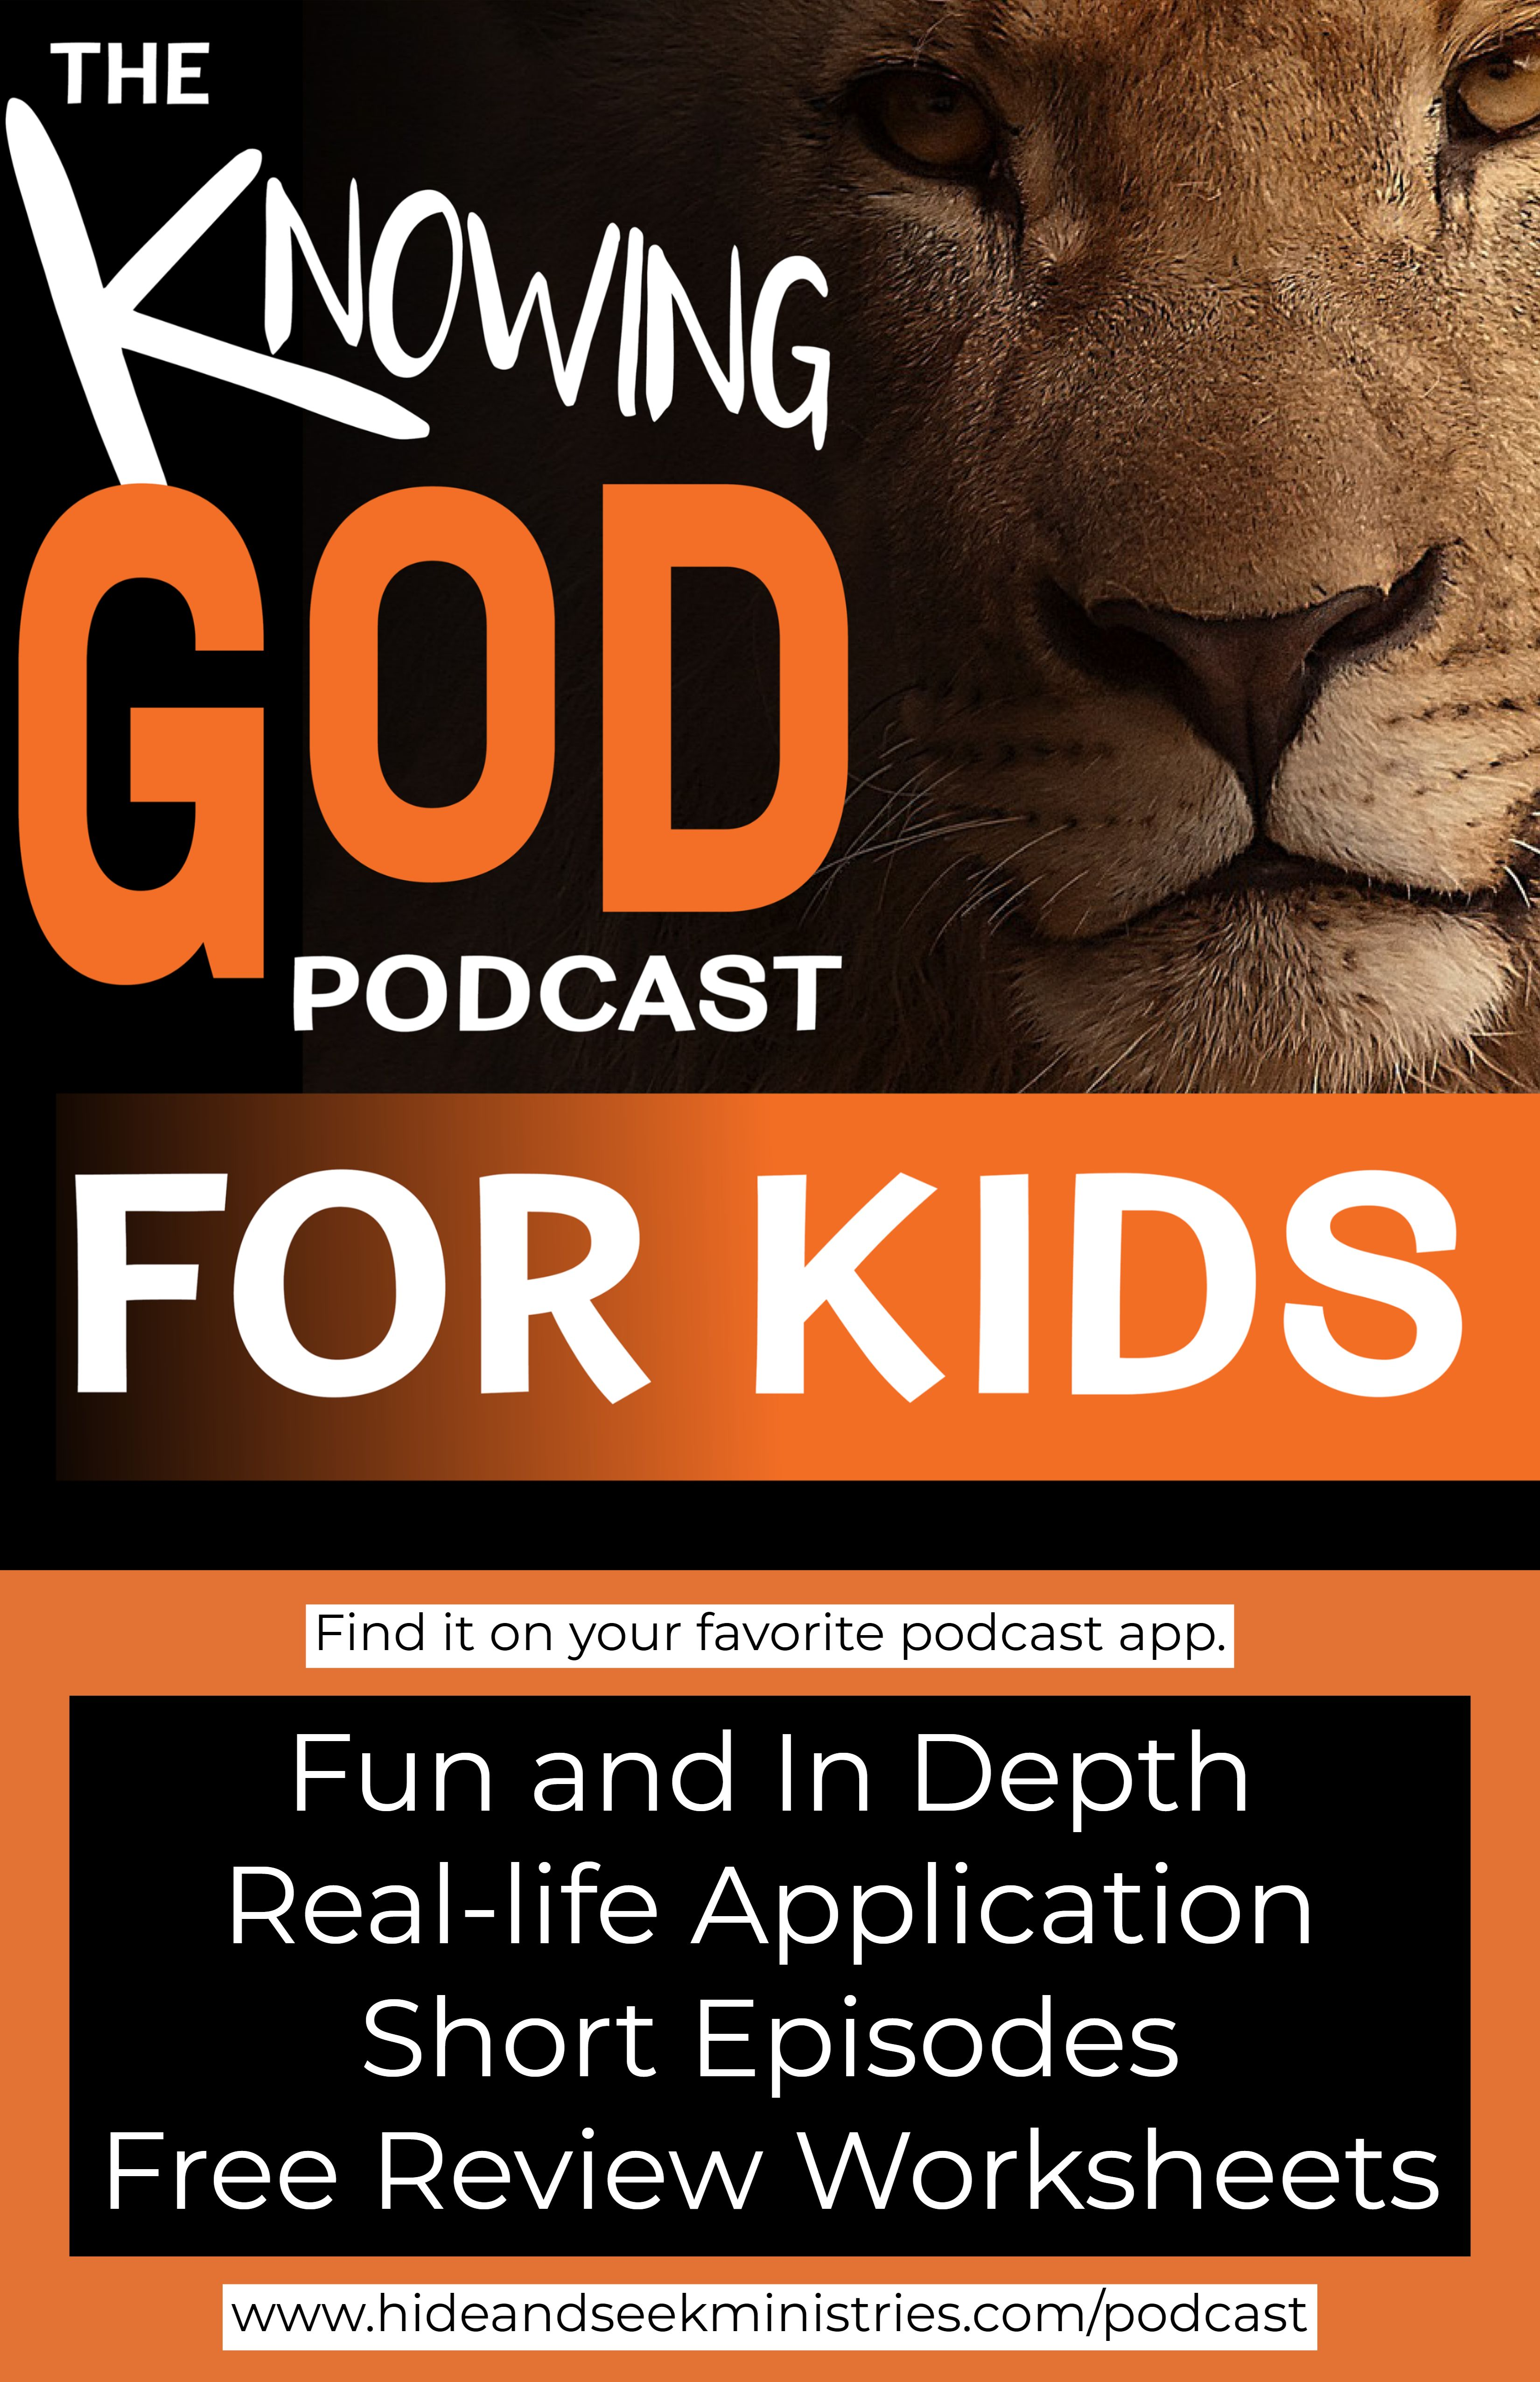 A fun and easy-to-understand podcast with in-depth bible study, real